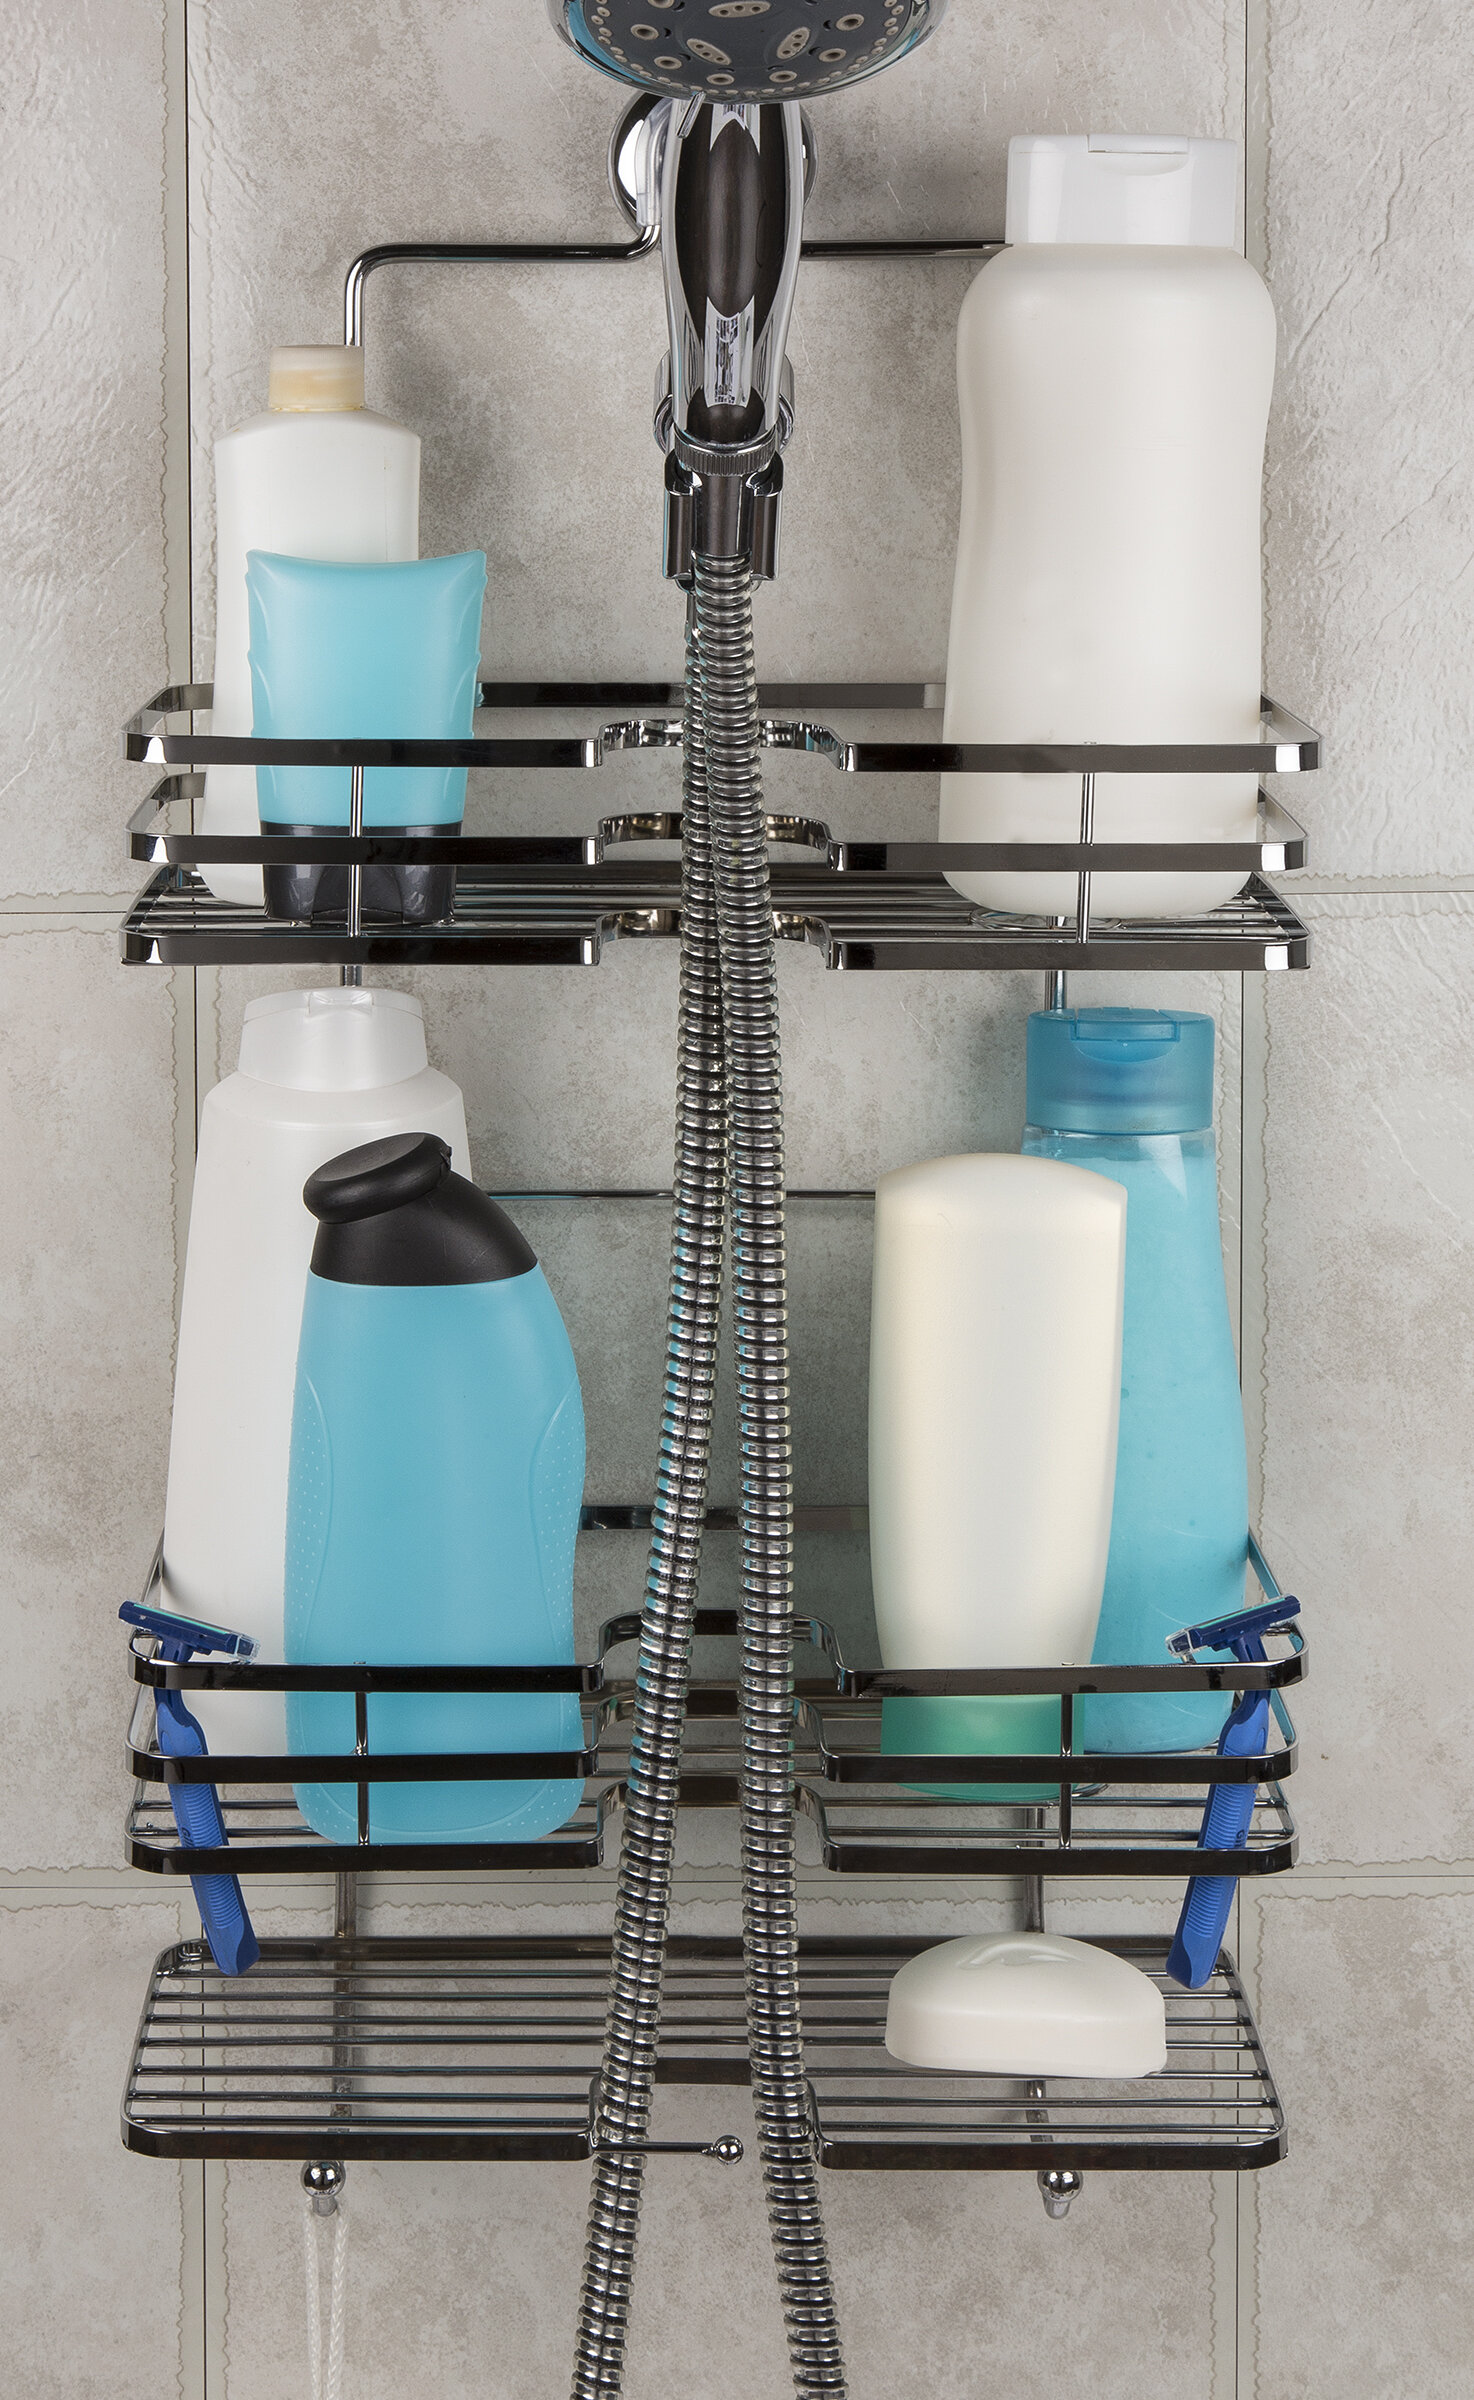 R&K Bath Planart Hanging Shower Caddy | Wayfair